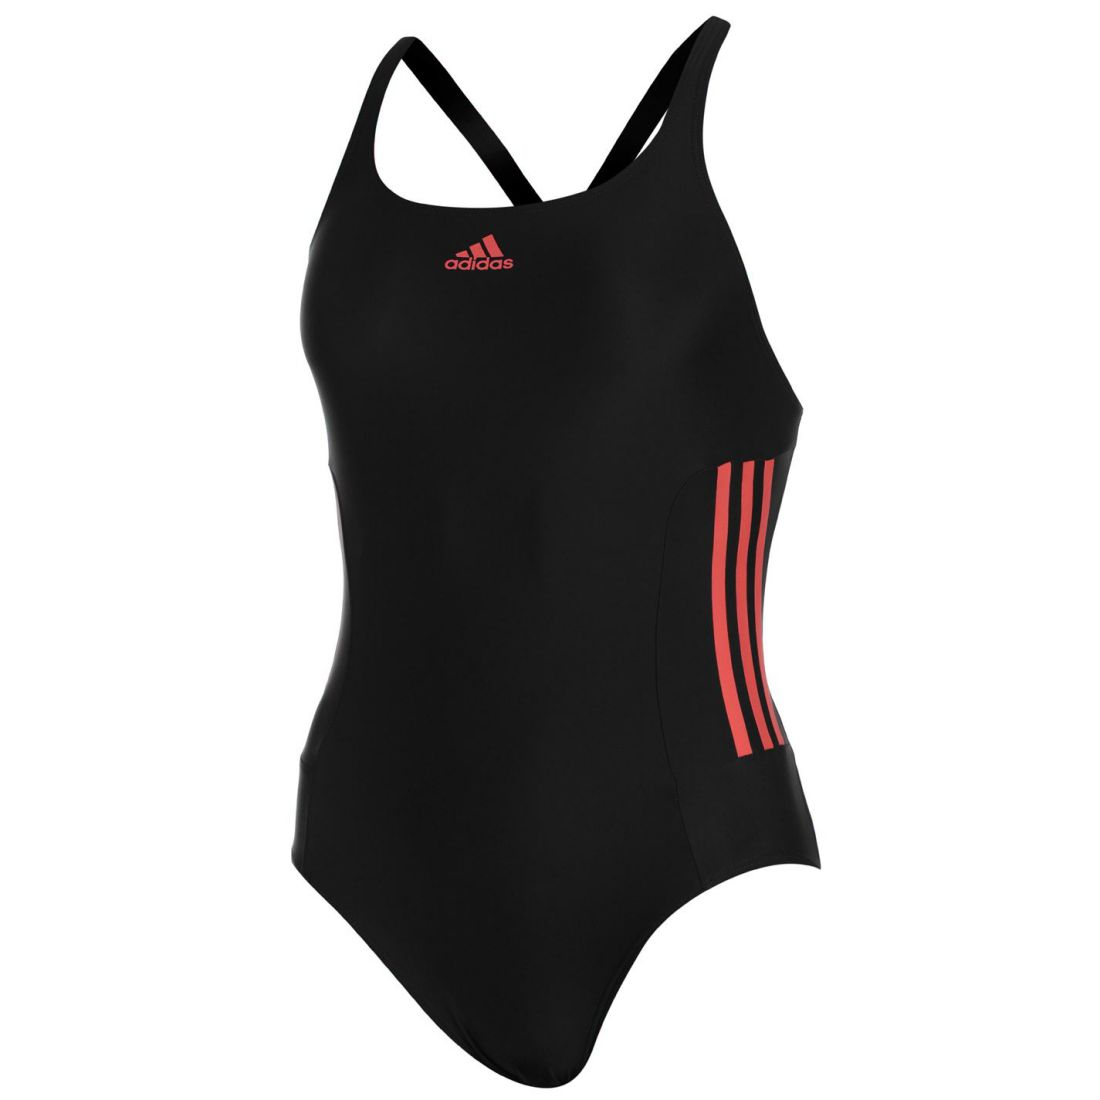 9db42b4727327 Image is loading adidas-Womens-Infinitex -Fitness-Eco-Swimsuit-Stripe-Chlorine-